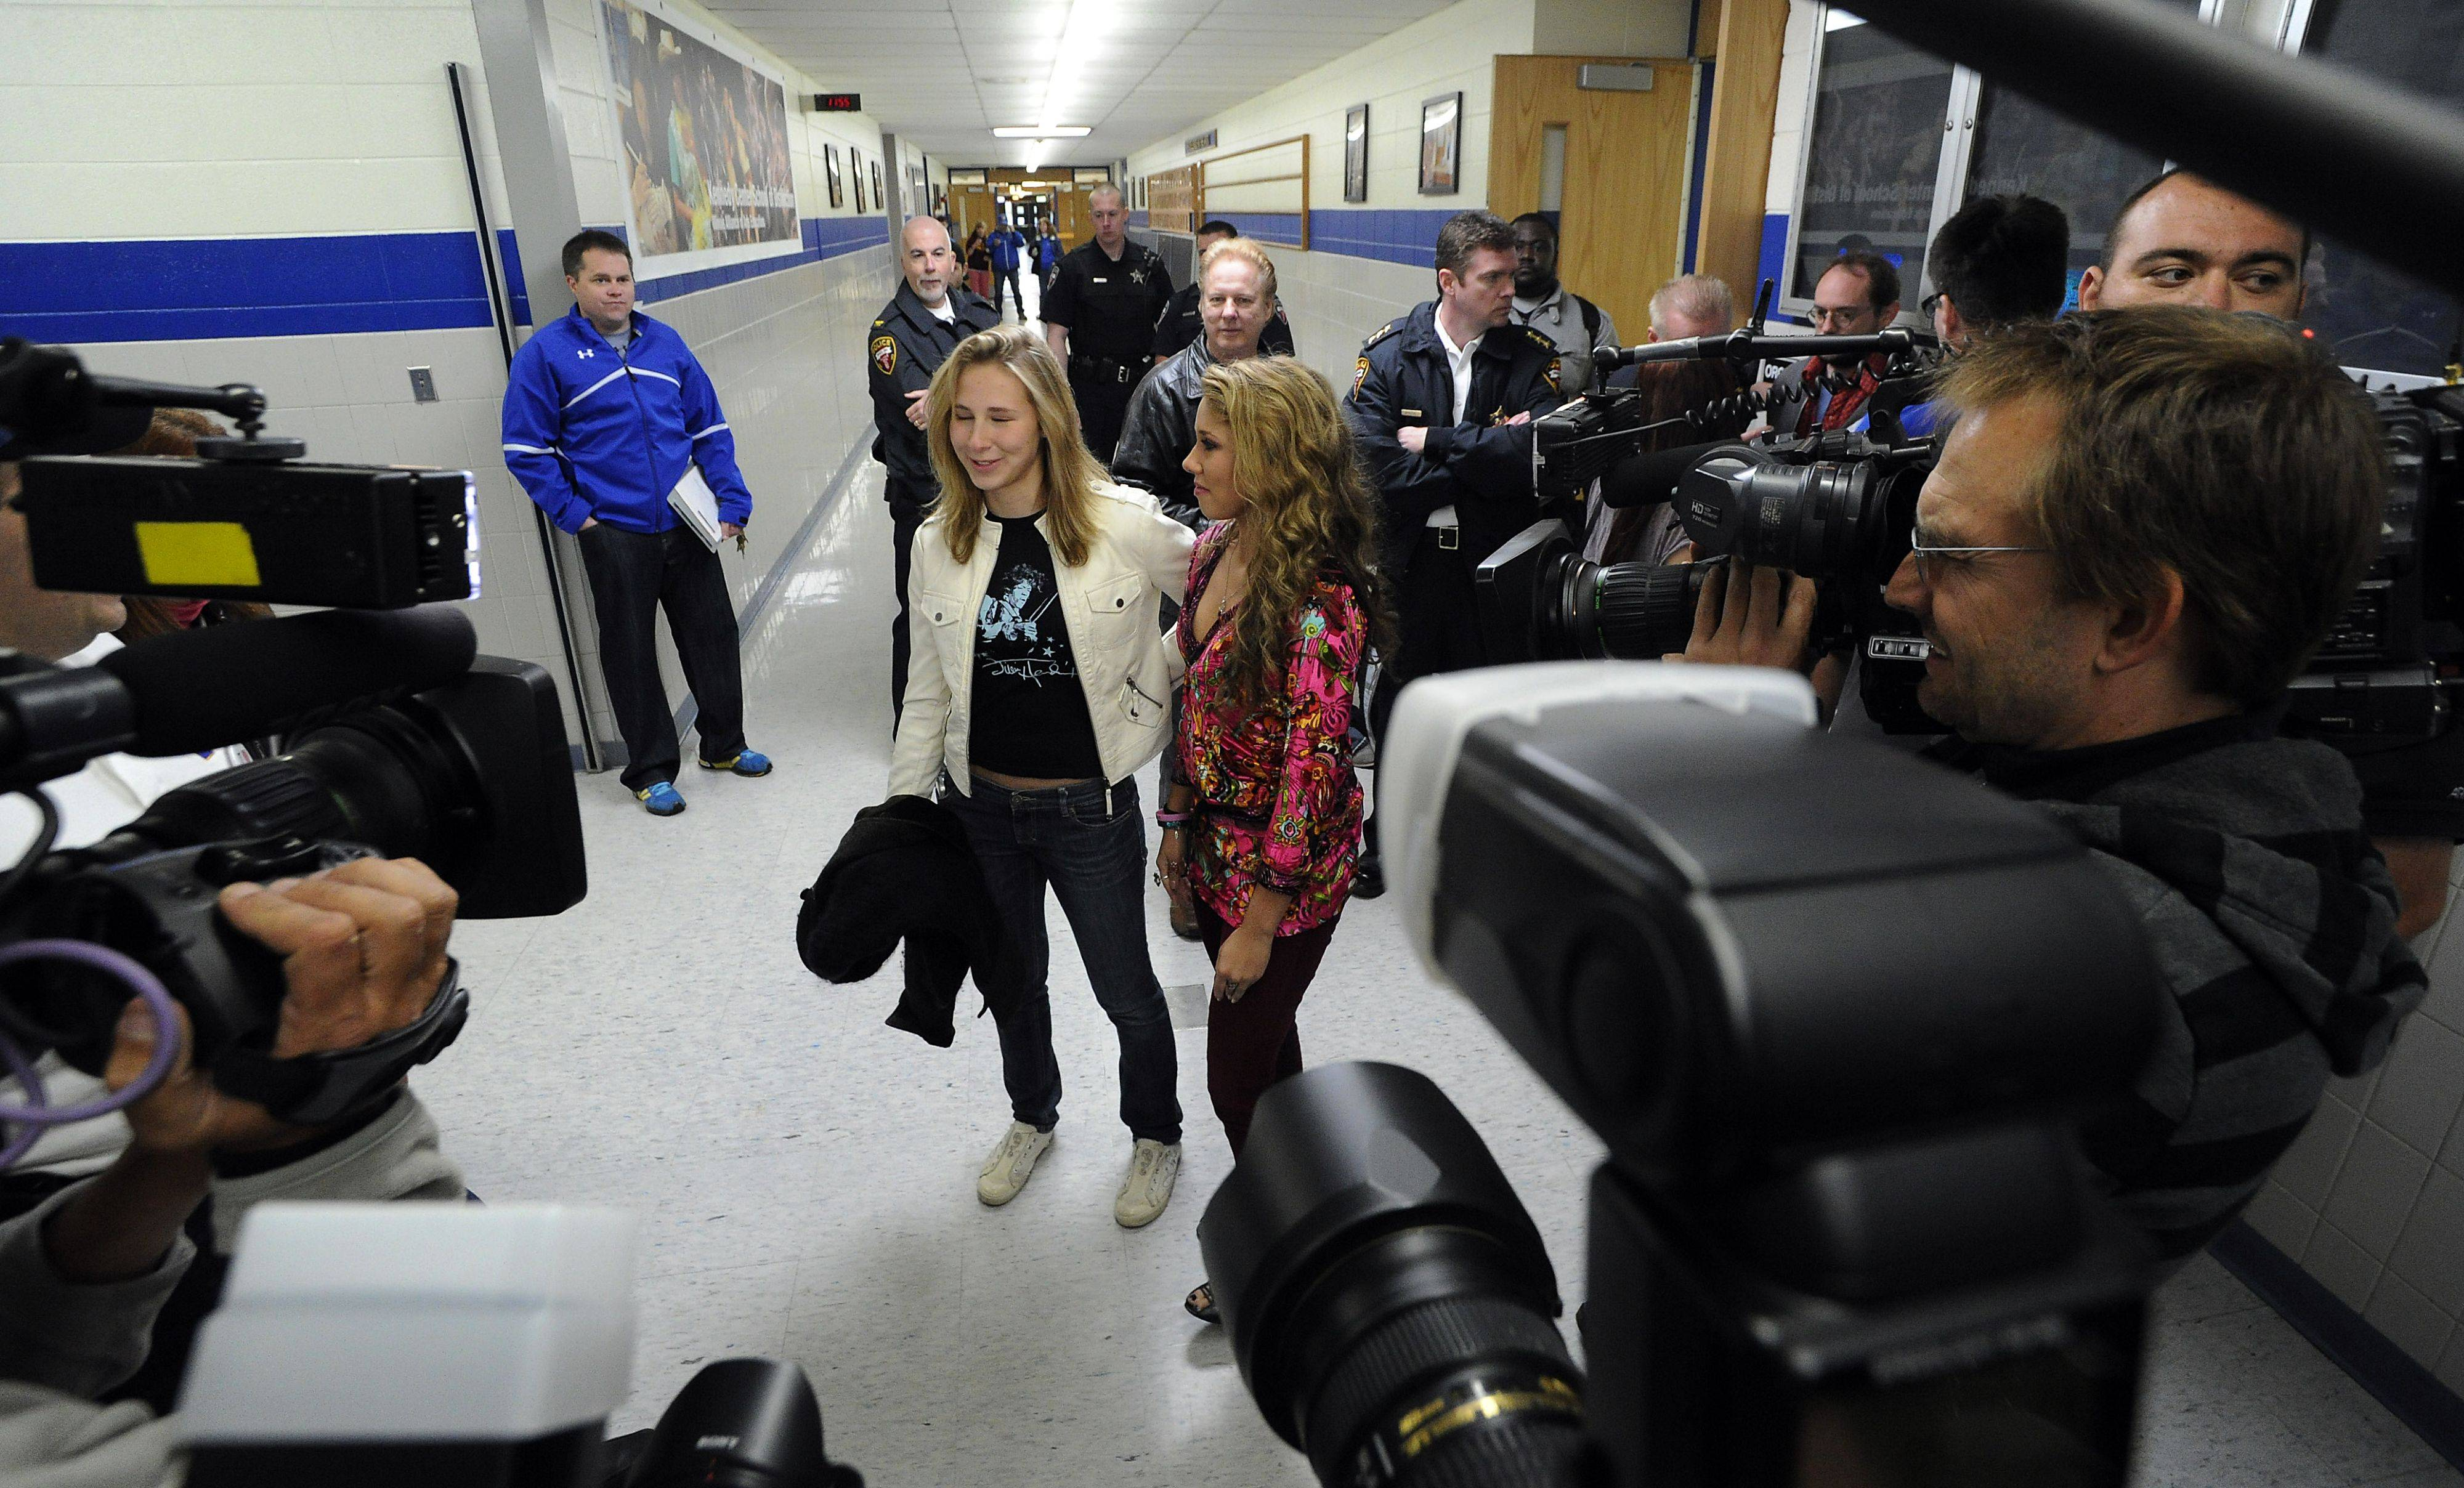 Haley Reinhart greets her fans at the Wheeling High School on Saturday as part of her American Idol hometown tour with her sister Angelia.